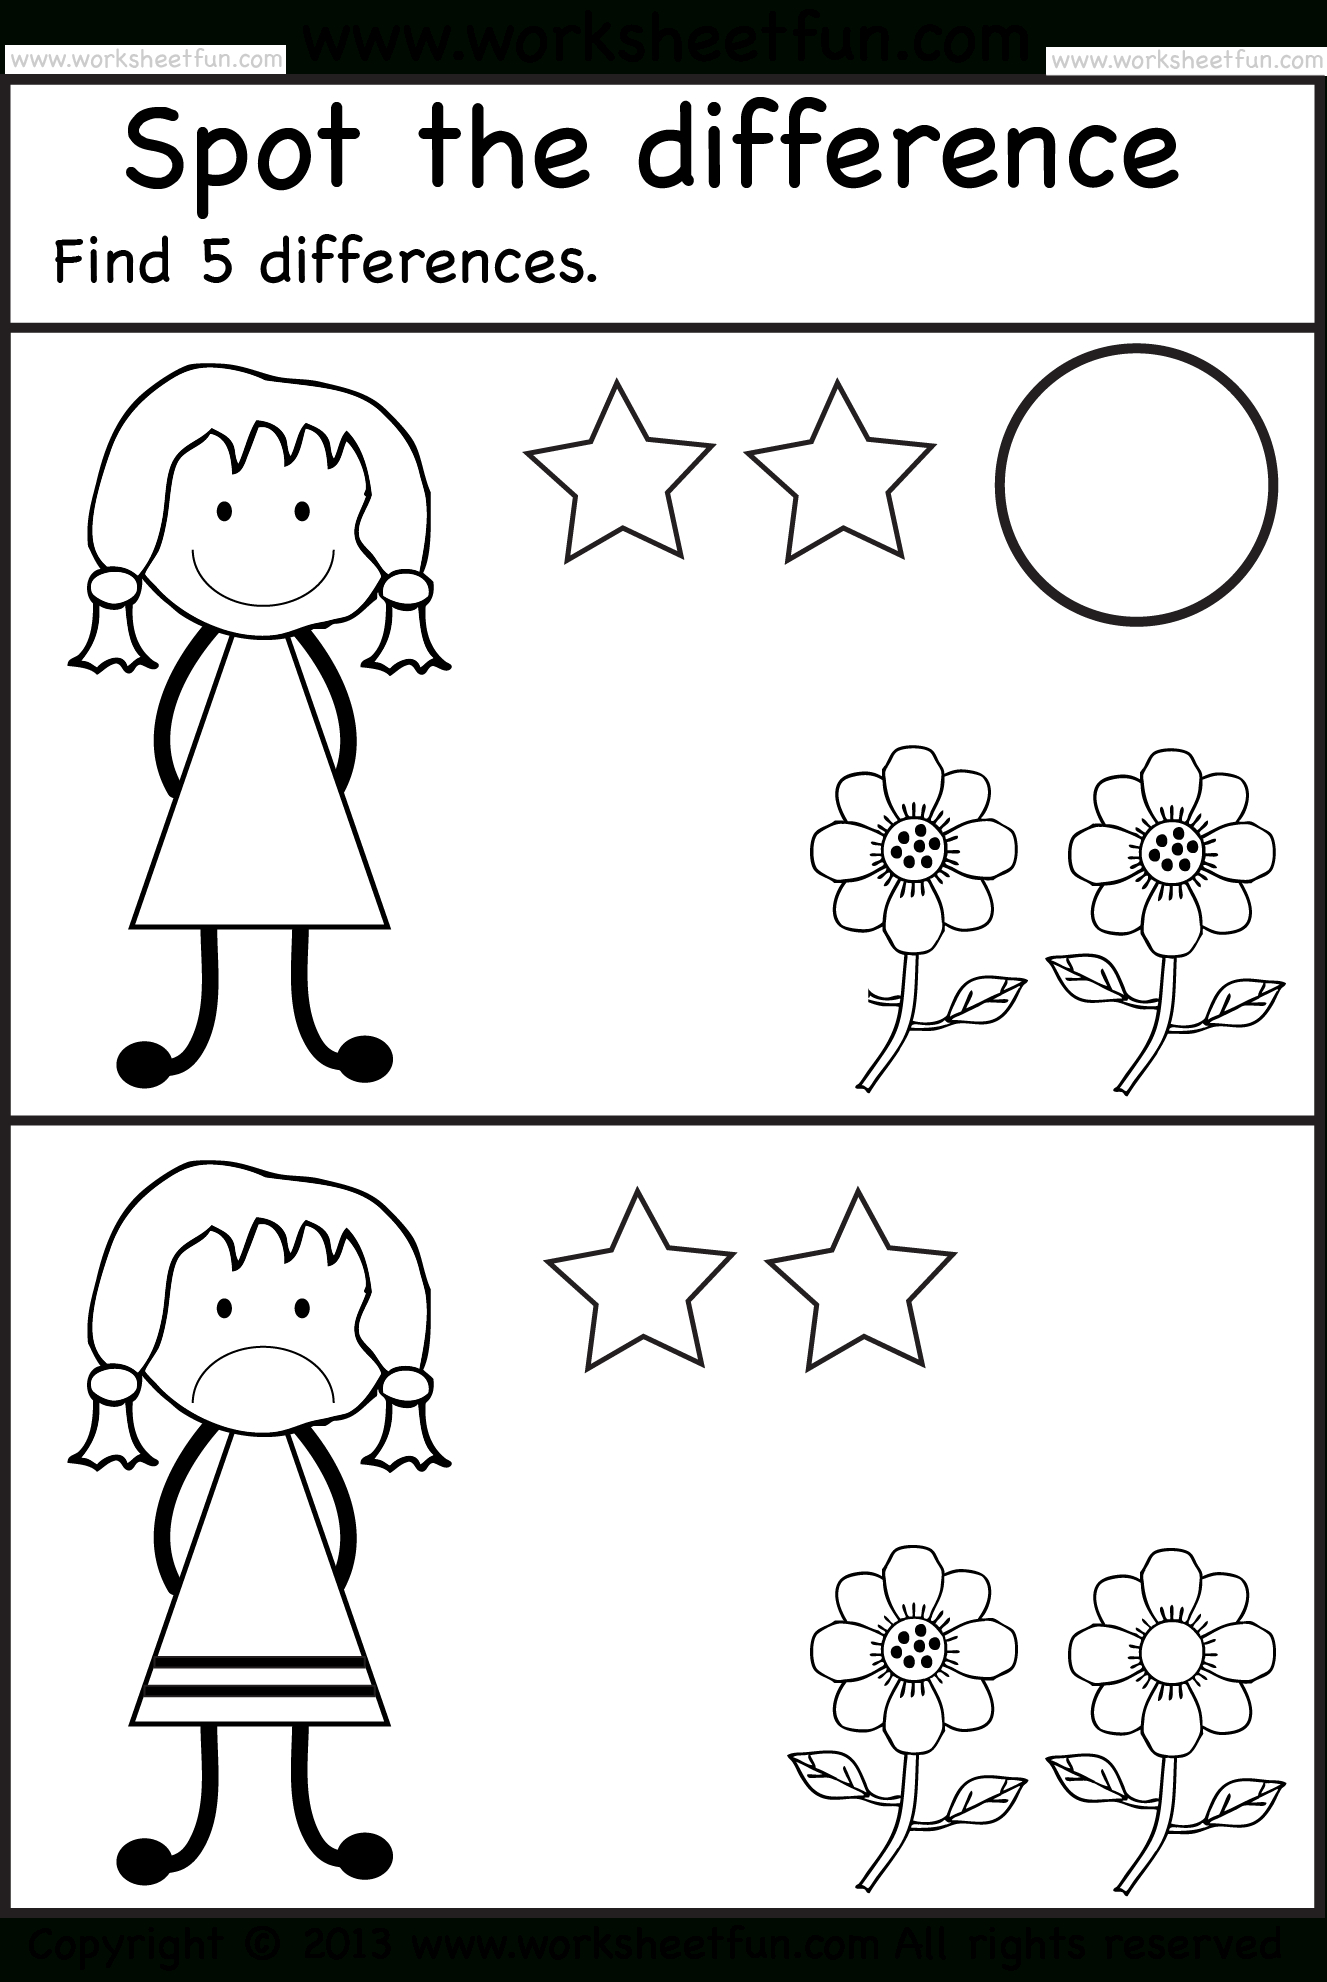 Free Printable Spot The Difference Worksheets